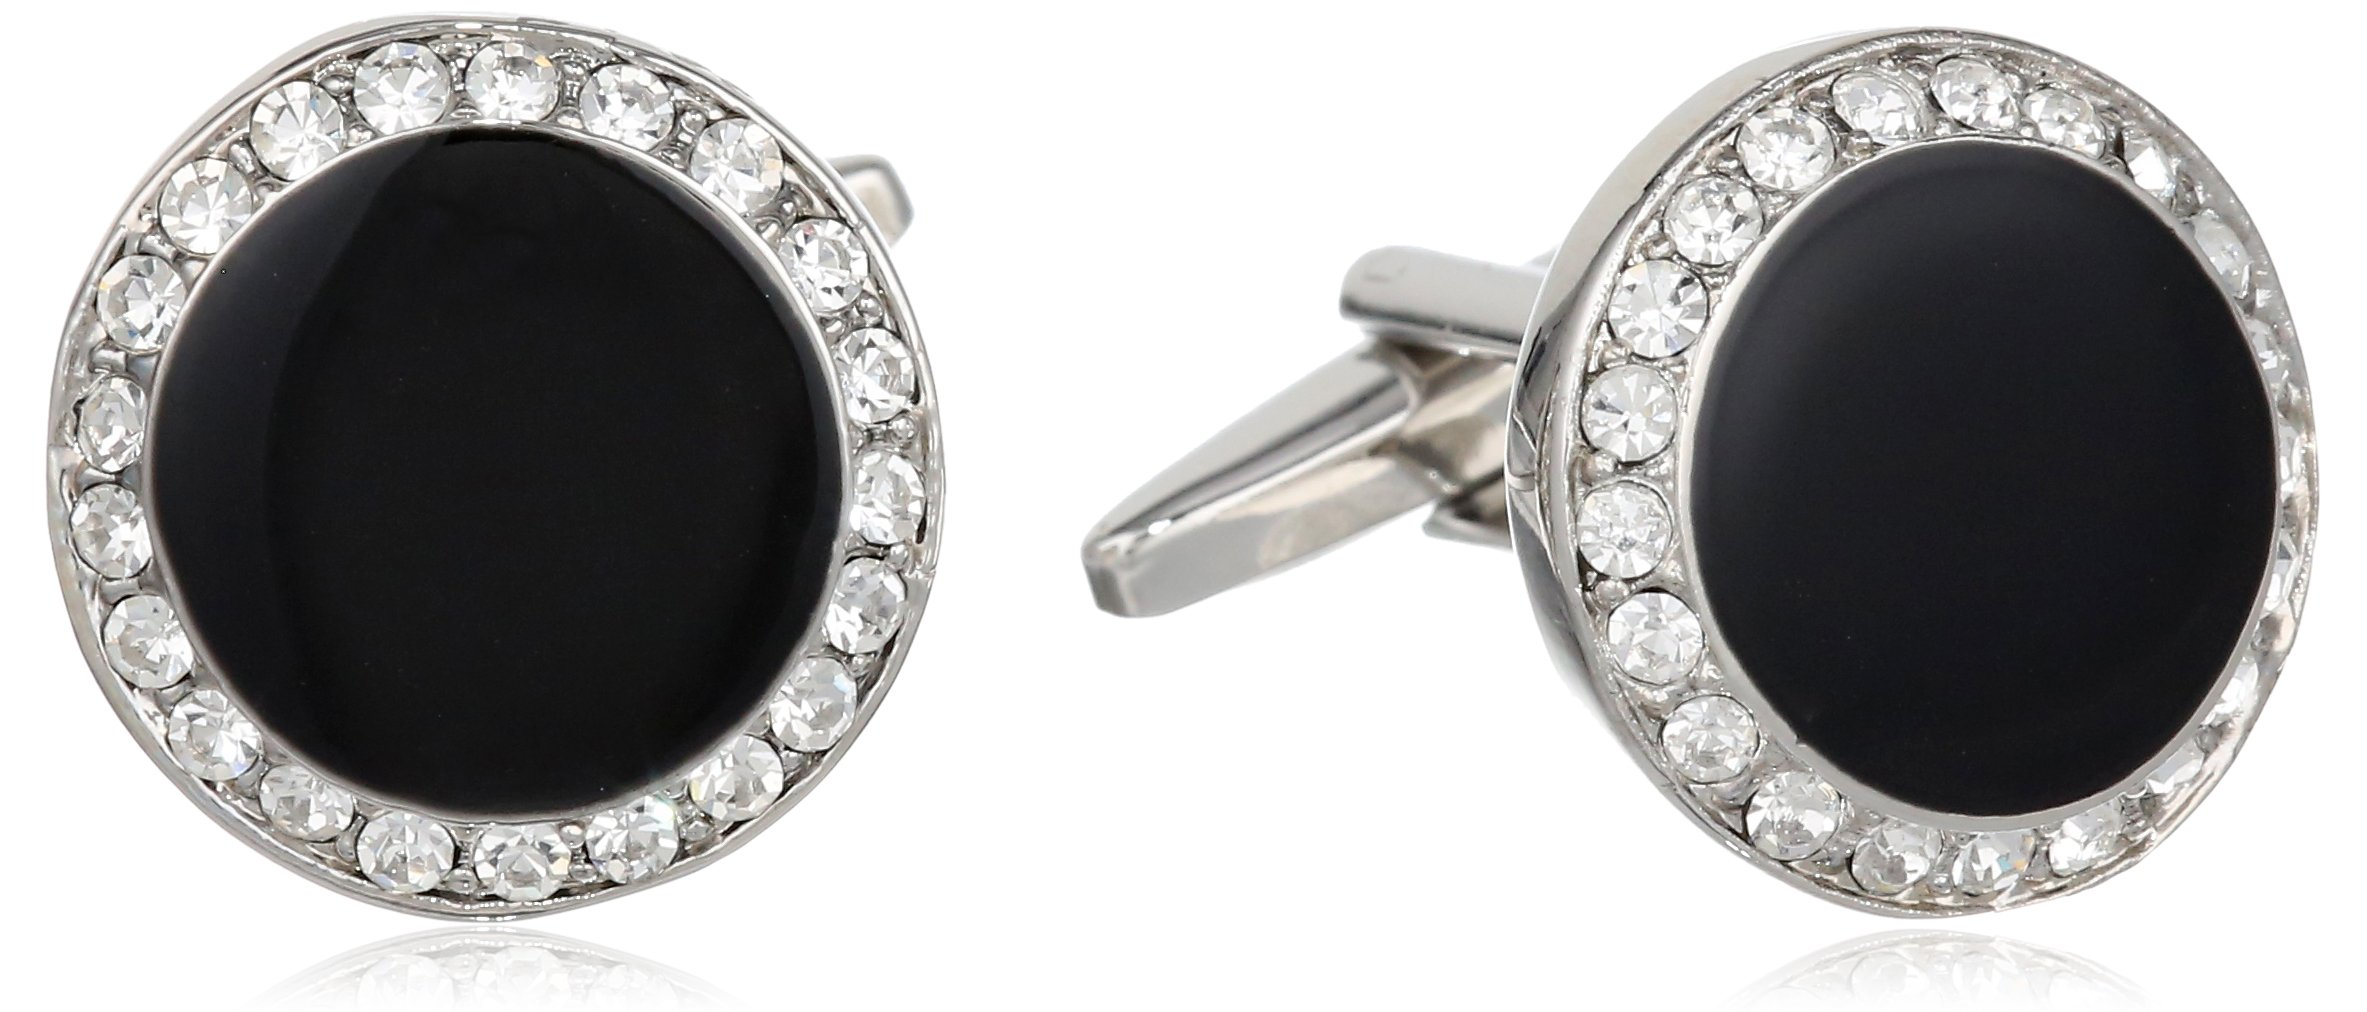 Stacy Adams Men's Round Silver Cuff Link With Black Enamel and Crystals, Silver/Crystal, One Size